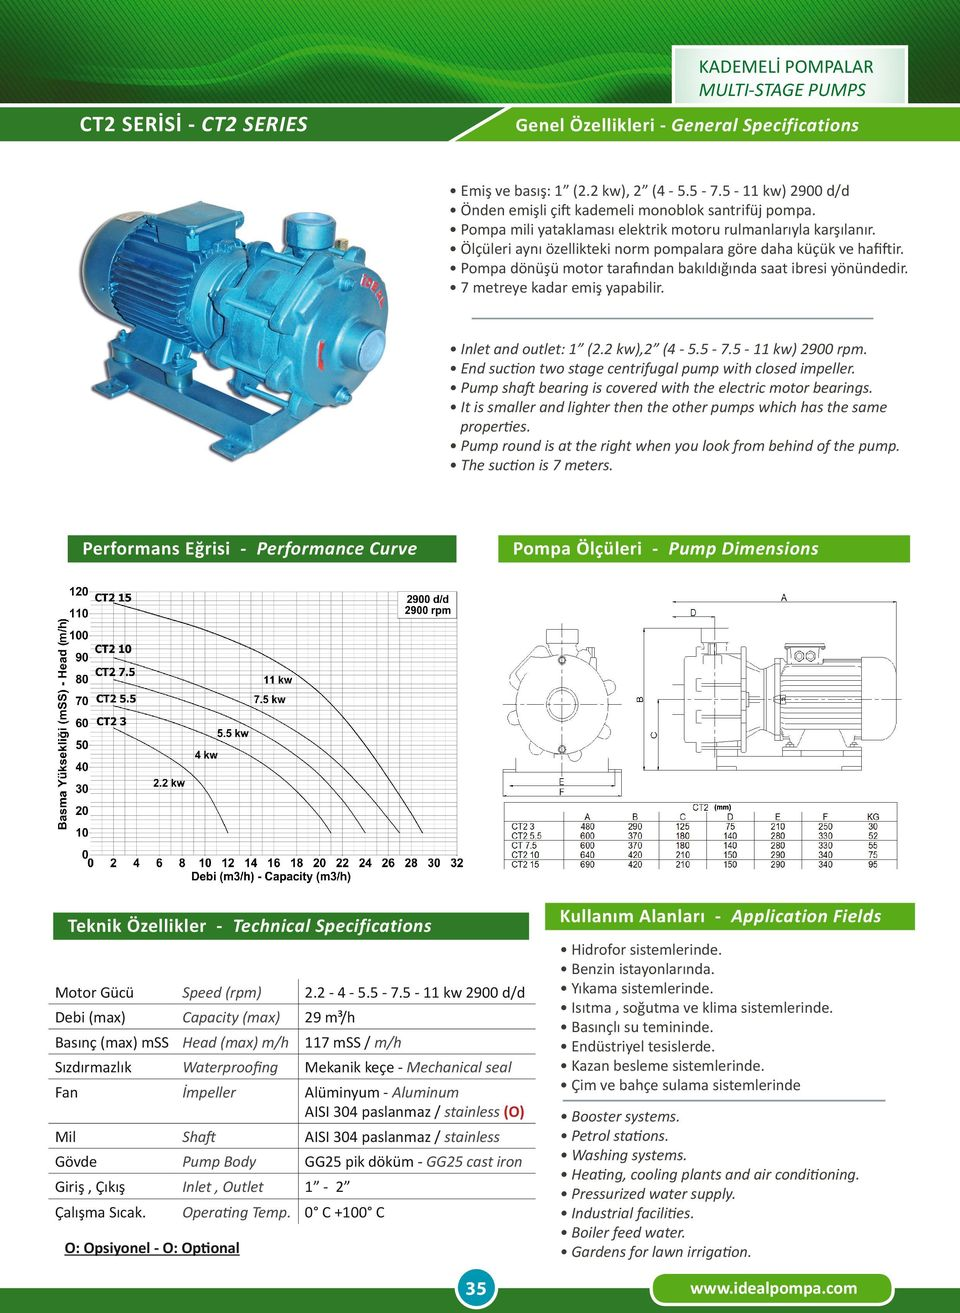 End suction two stage centrifugal pump with closed impeller. Pump shaft bearing is covered with the electric motor bearings.